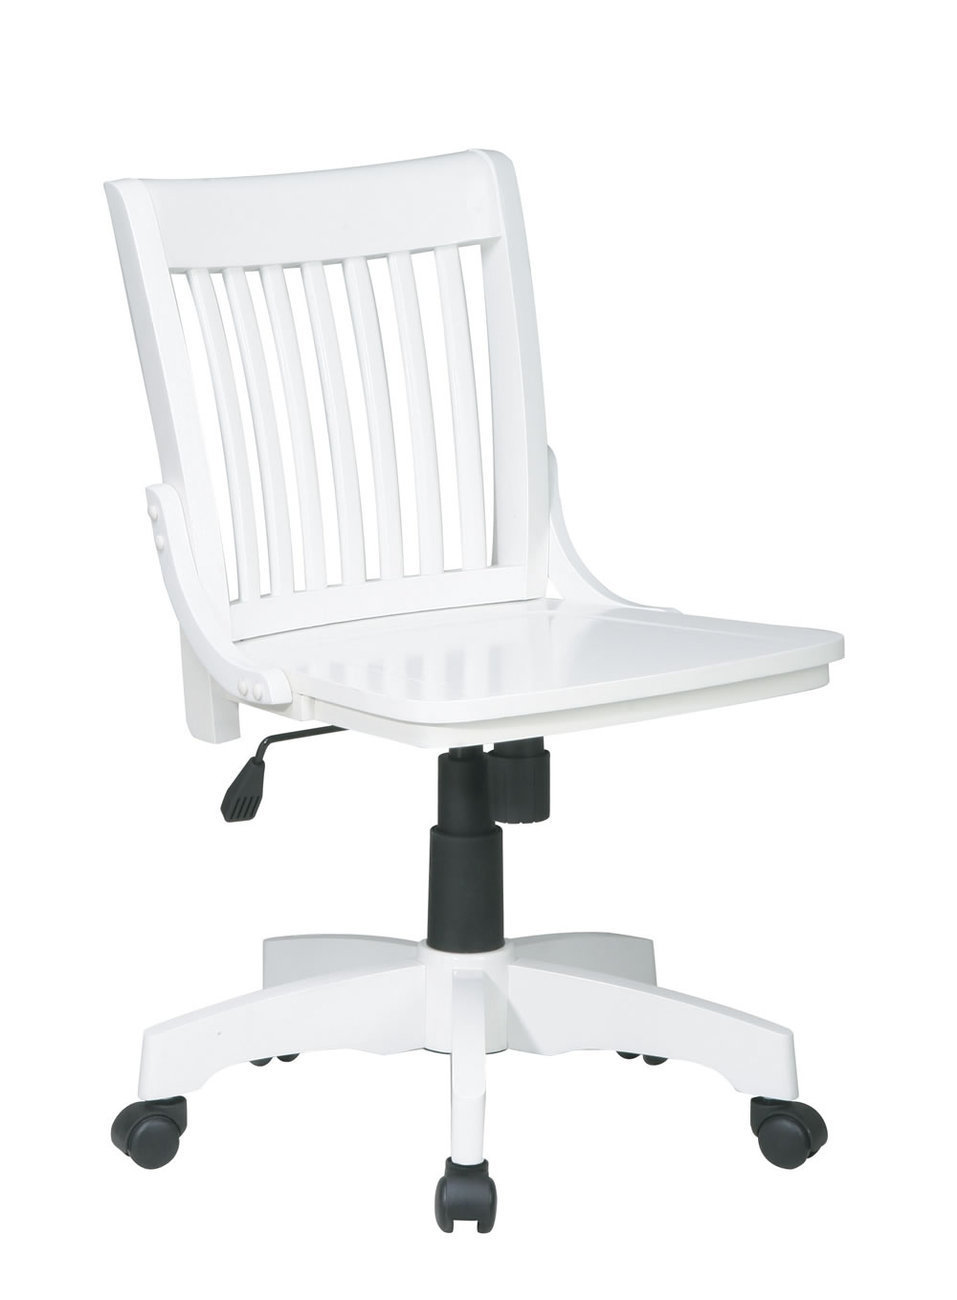 White Mission Style WOOD Chair Armless Banker Swivel Desk Office Chair ...